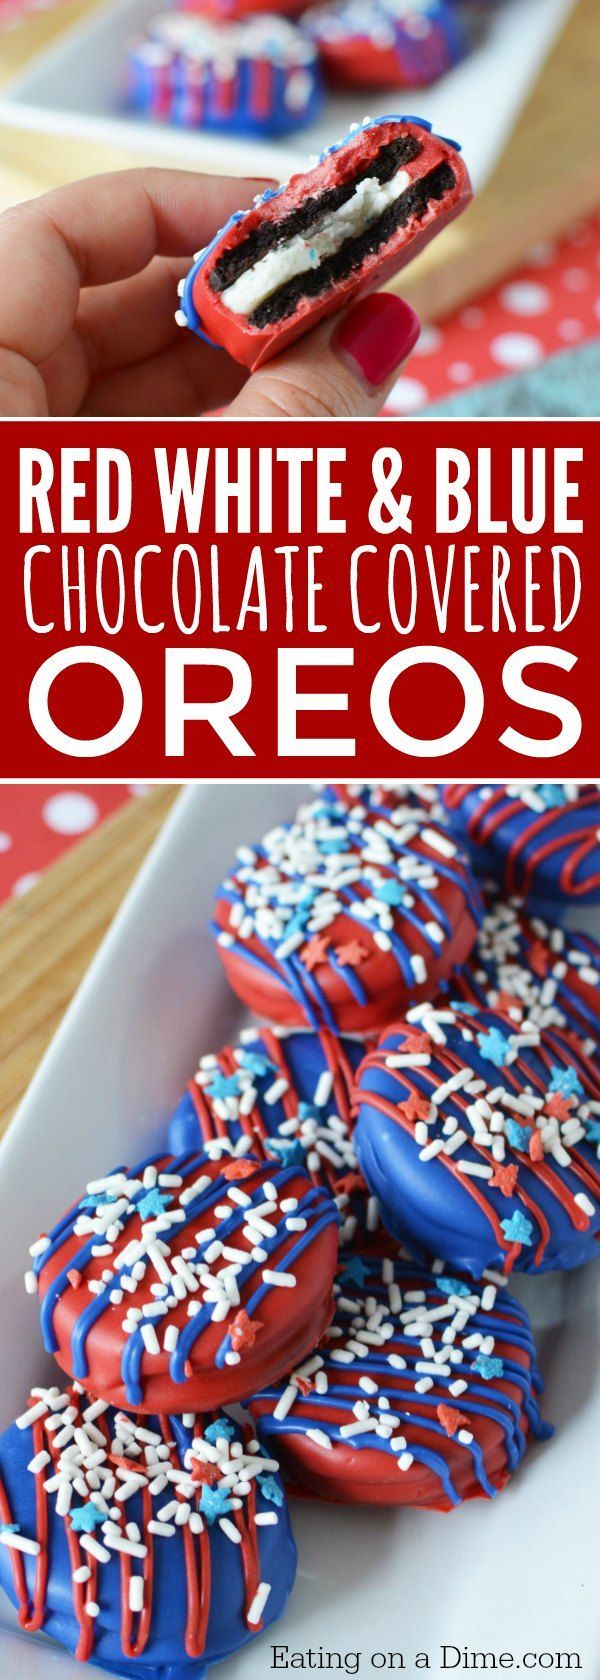 of July Chocolate Covered Oreos These 4th of July Chocolate Covered Oreos are delicious and so easy to make. It is your new favorite 4th of July dessert. Make these chocolate dipped oreos today!These 4th of July Chocolate Covered Oreos are delicious and so easy to make. It is your new favorite 4th of July dessert. Make these chocolate dipped oreos today!